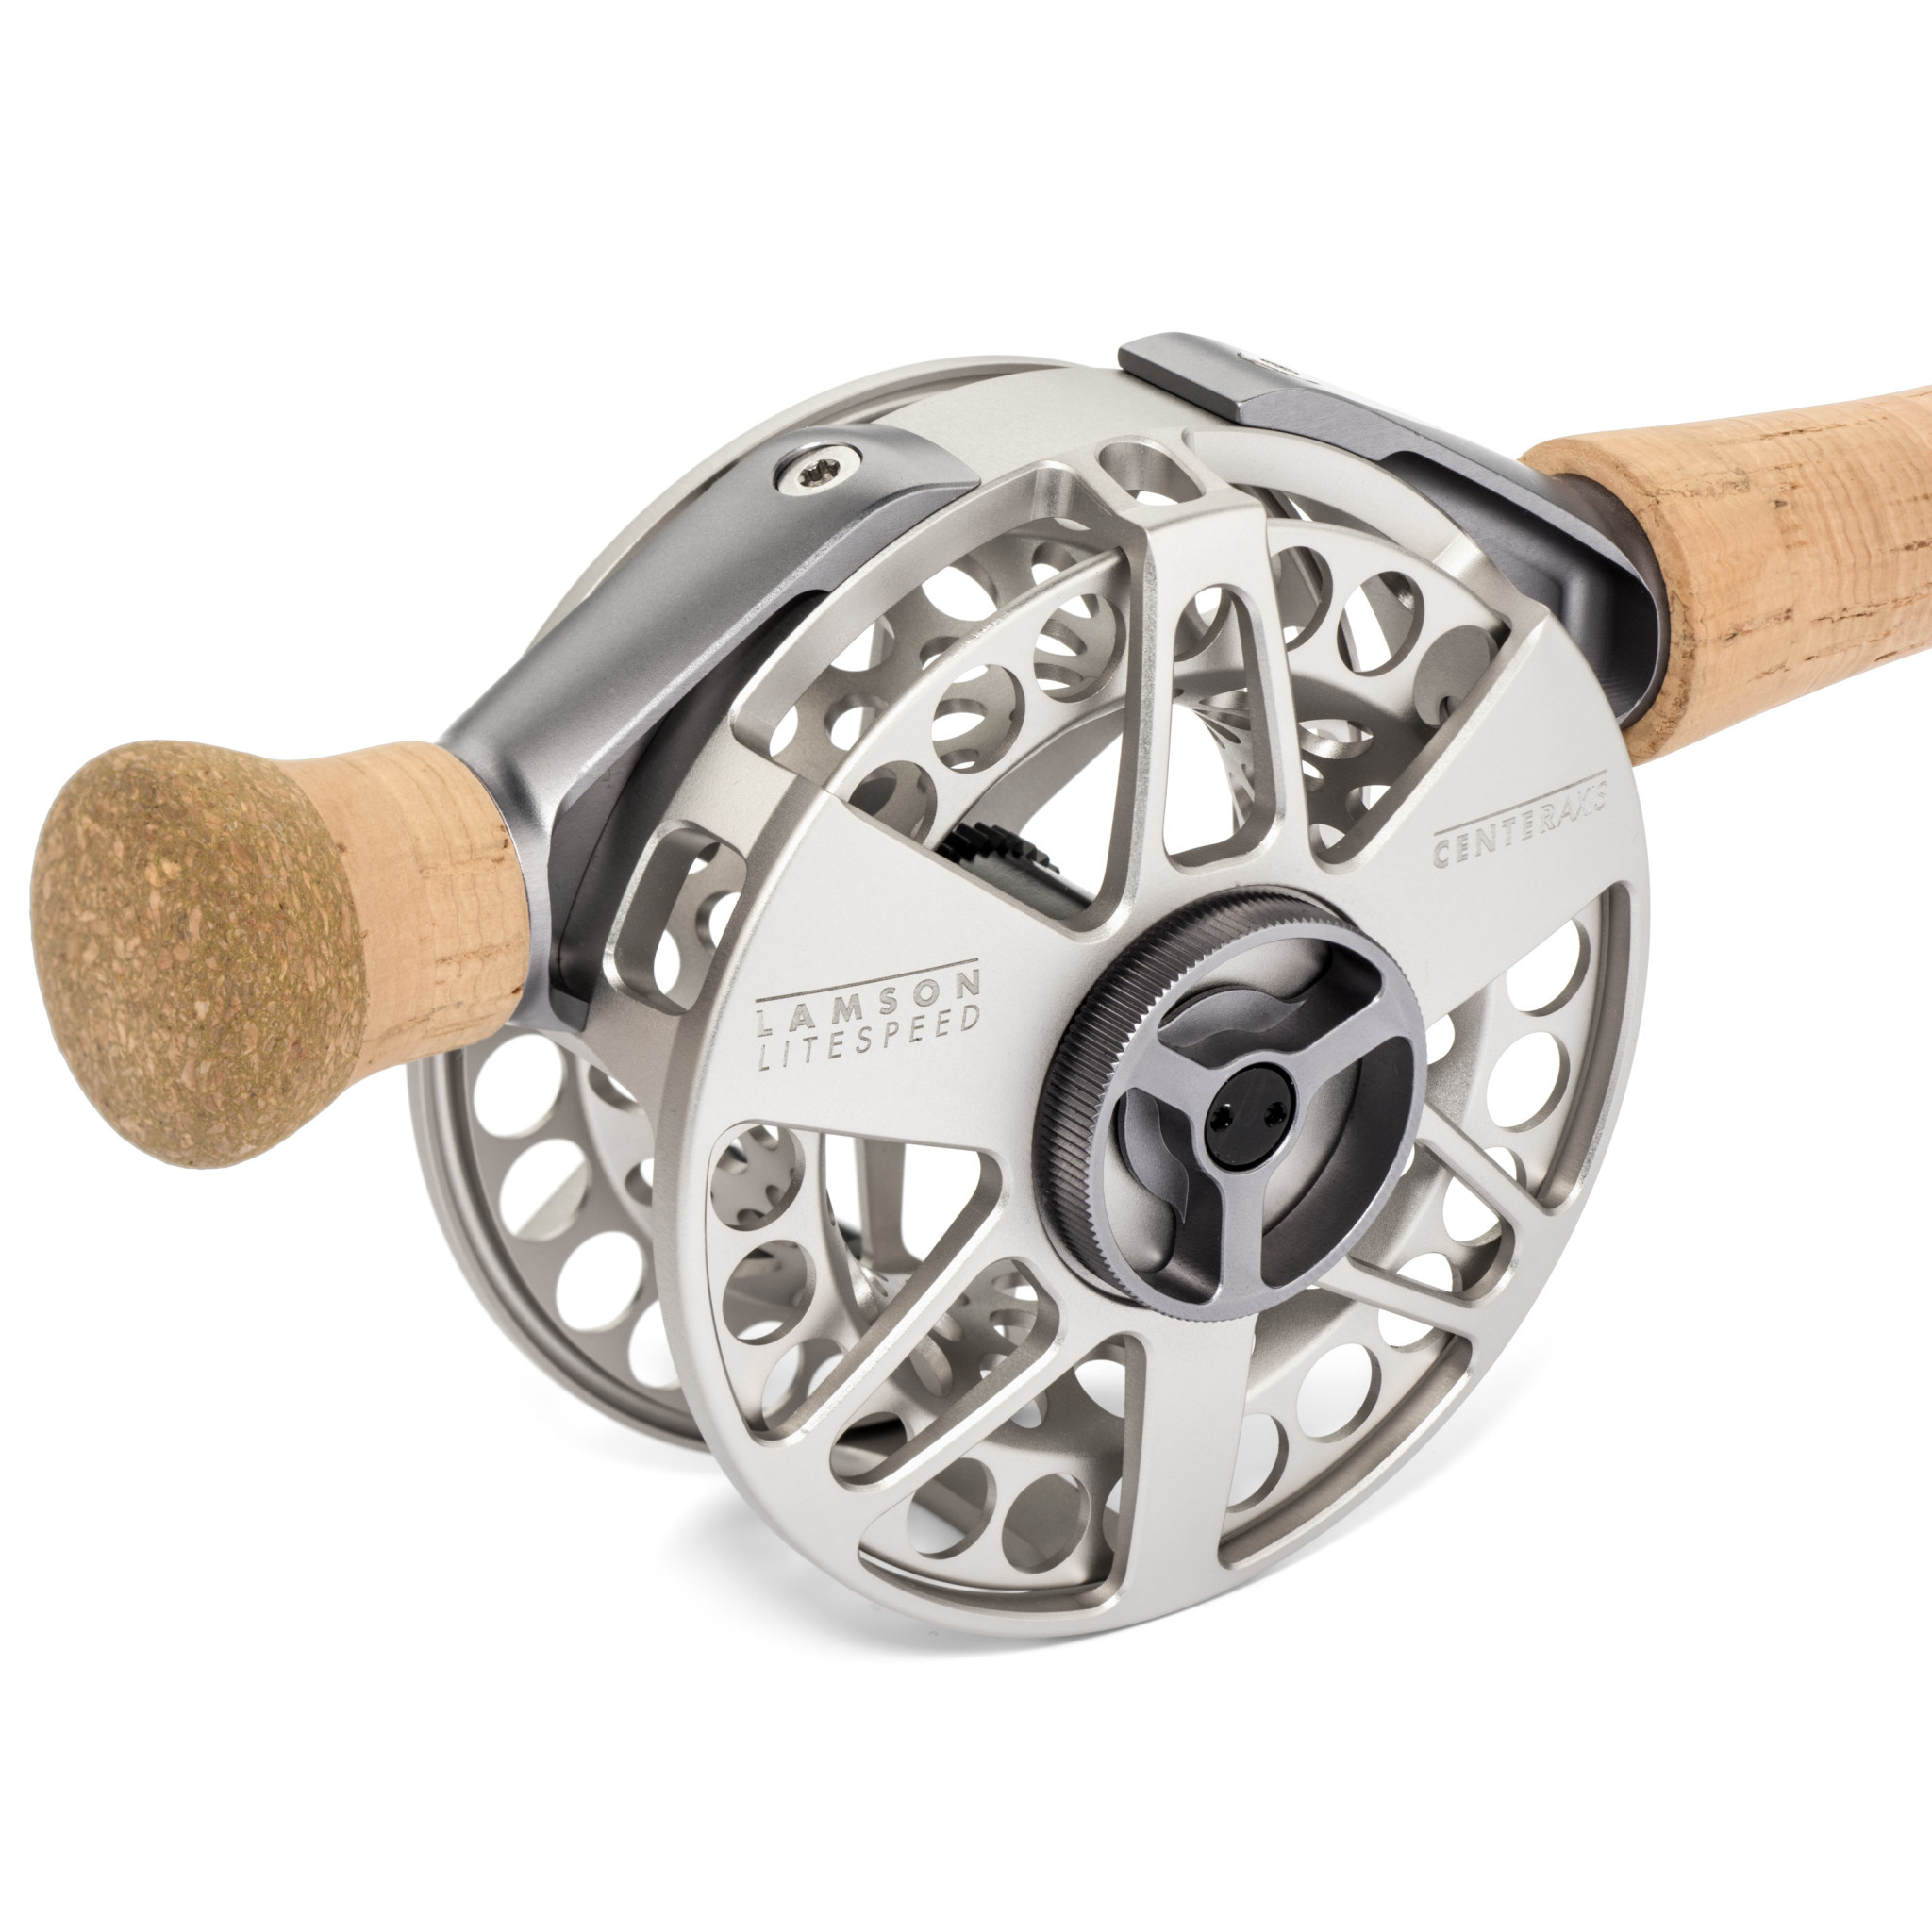 Waterworks Lamson Lamson Center Axis Saltwater Rod & Reel System